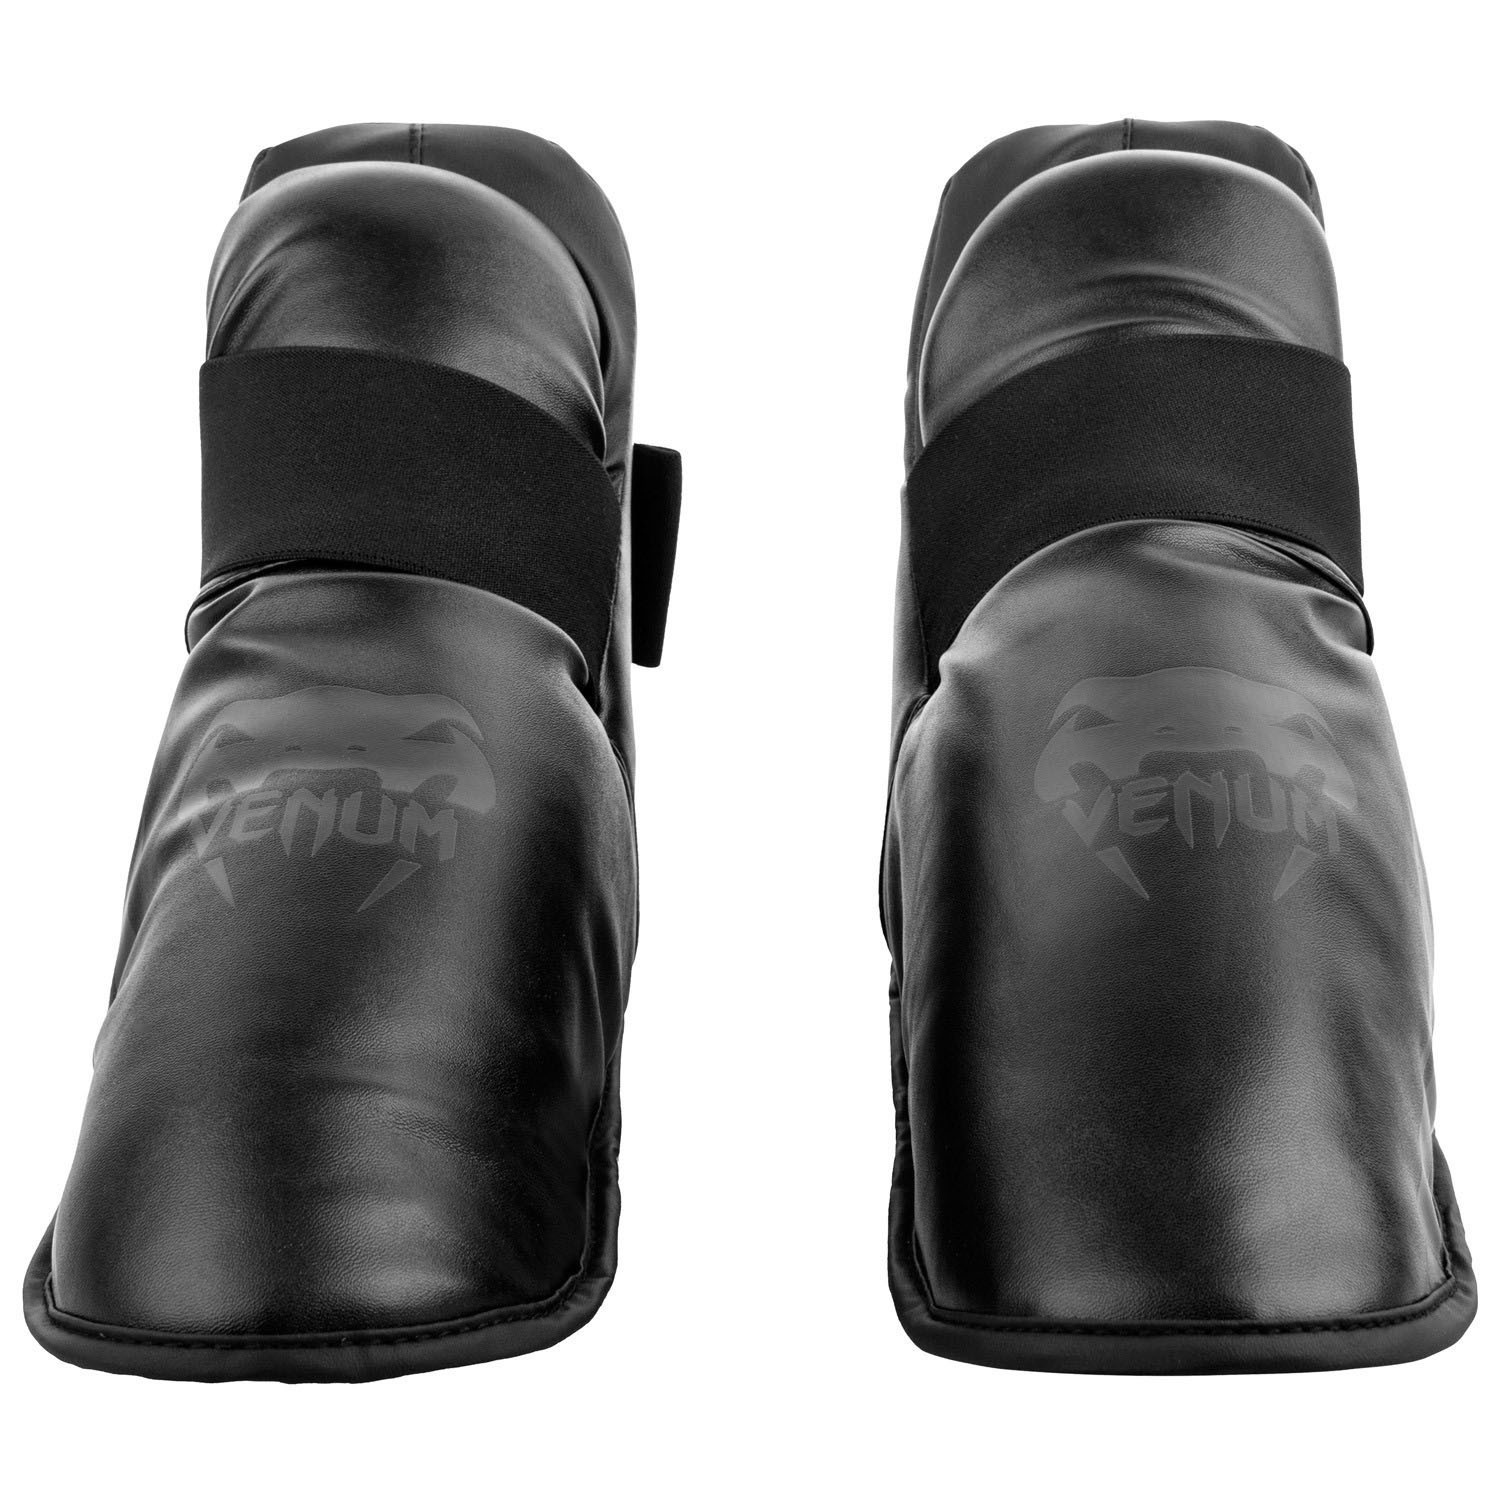 New Sparring Foot Gear Pads Karate Taekwondo Fighting Guards Youth//Adult